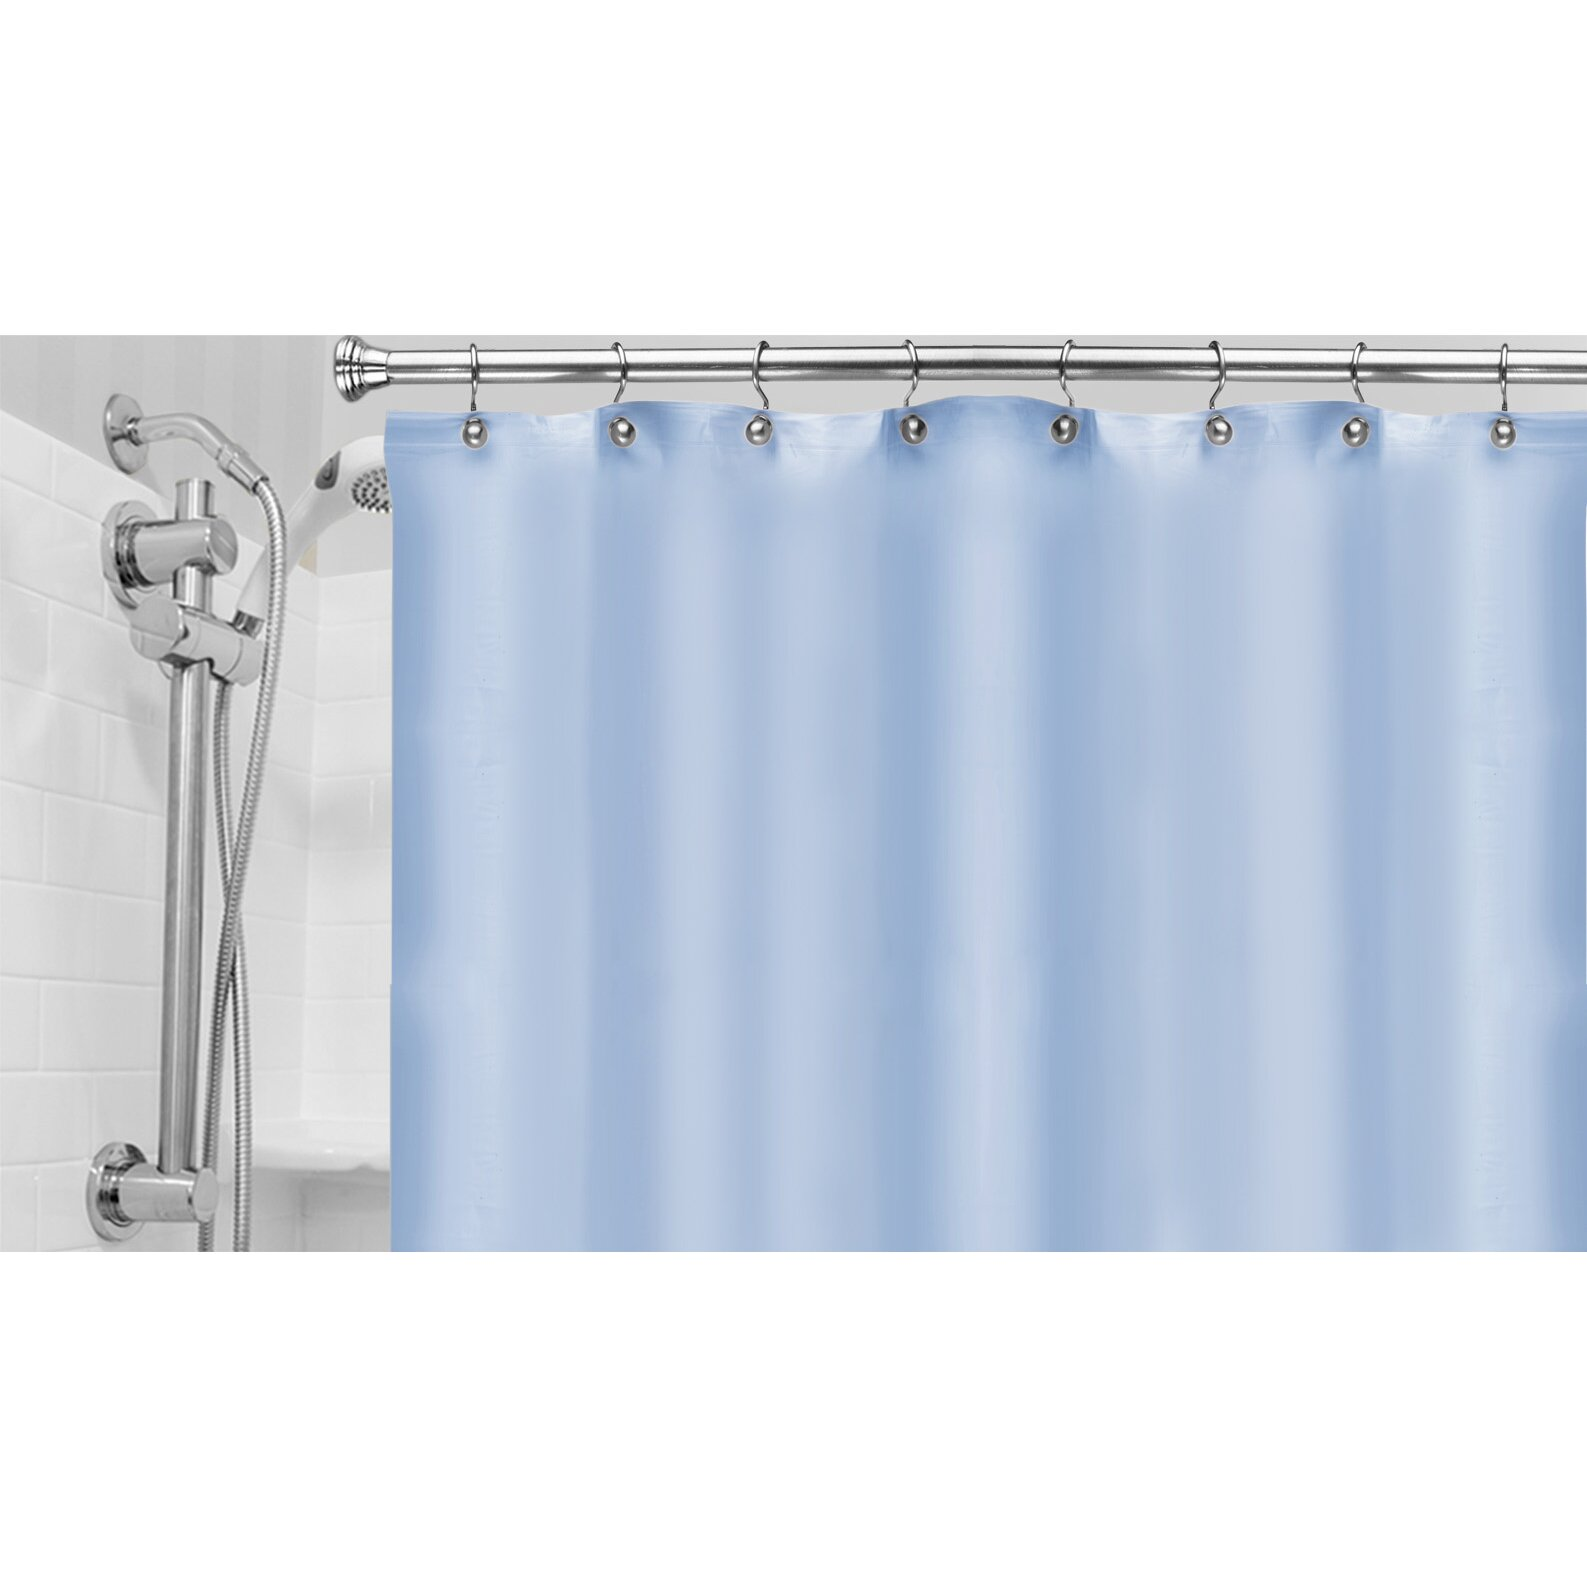 56 How To Prevent Mildew On Shower Curtain 7 Steps With Pictures